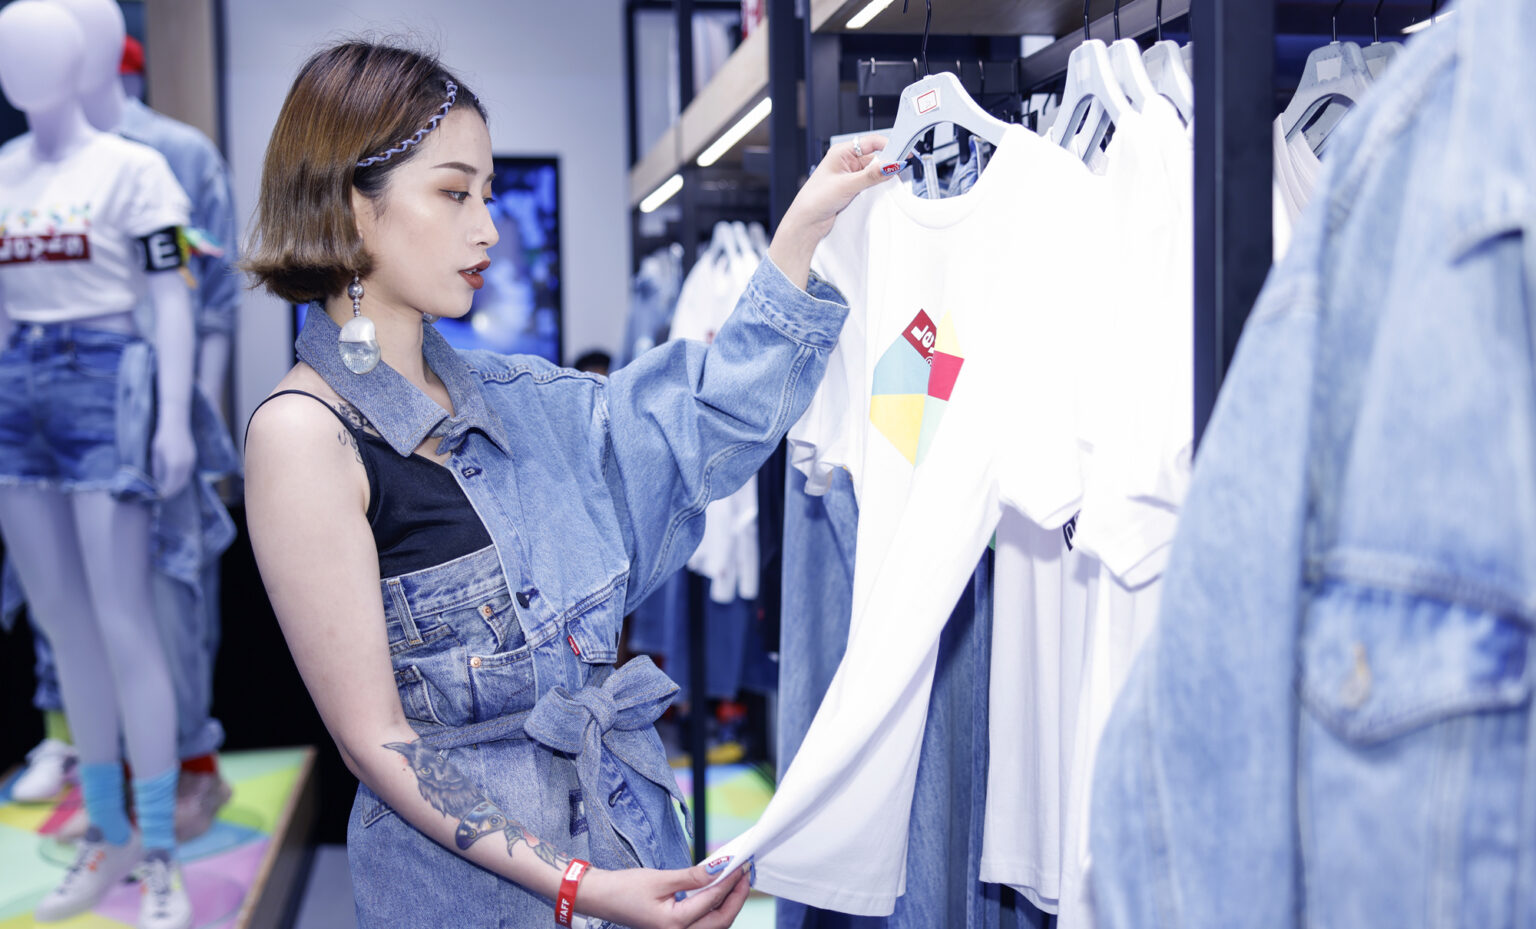 Find out about Levi's recent Shanghai store opening